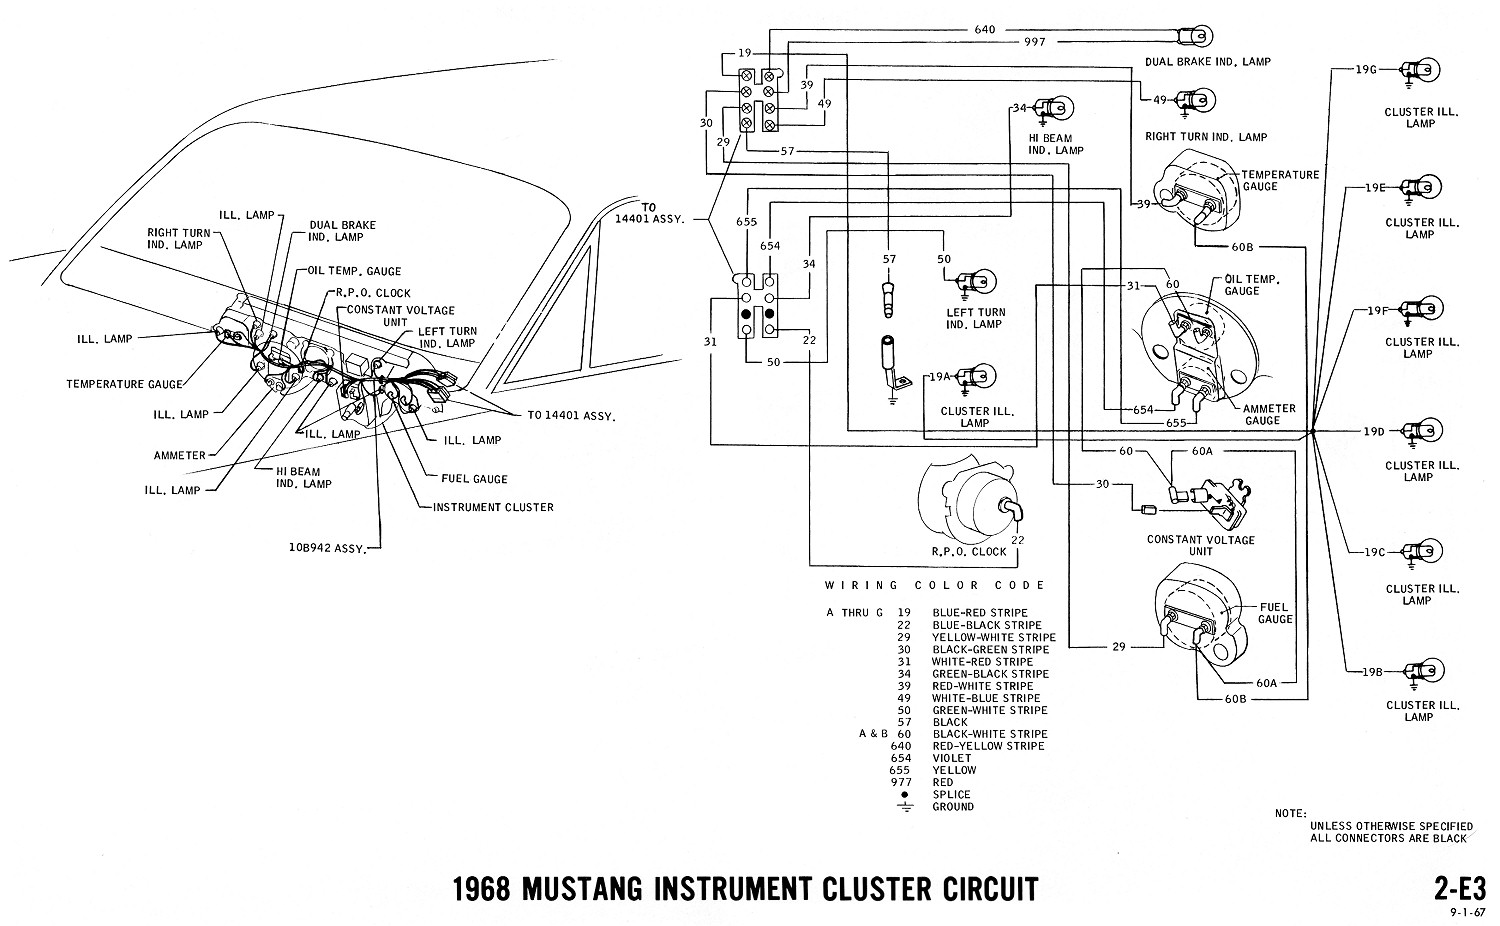 E3 1968 mustang wiring diagrams evolving software 67 mustang wiring diagram at alyssarenee.co